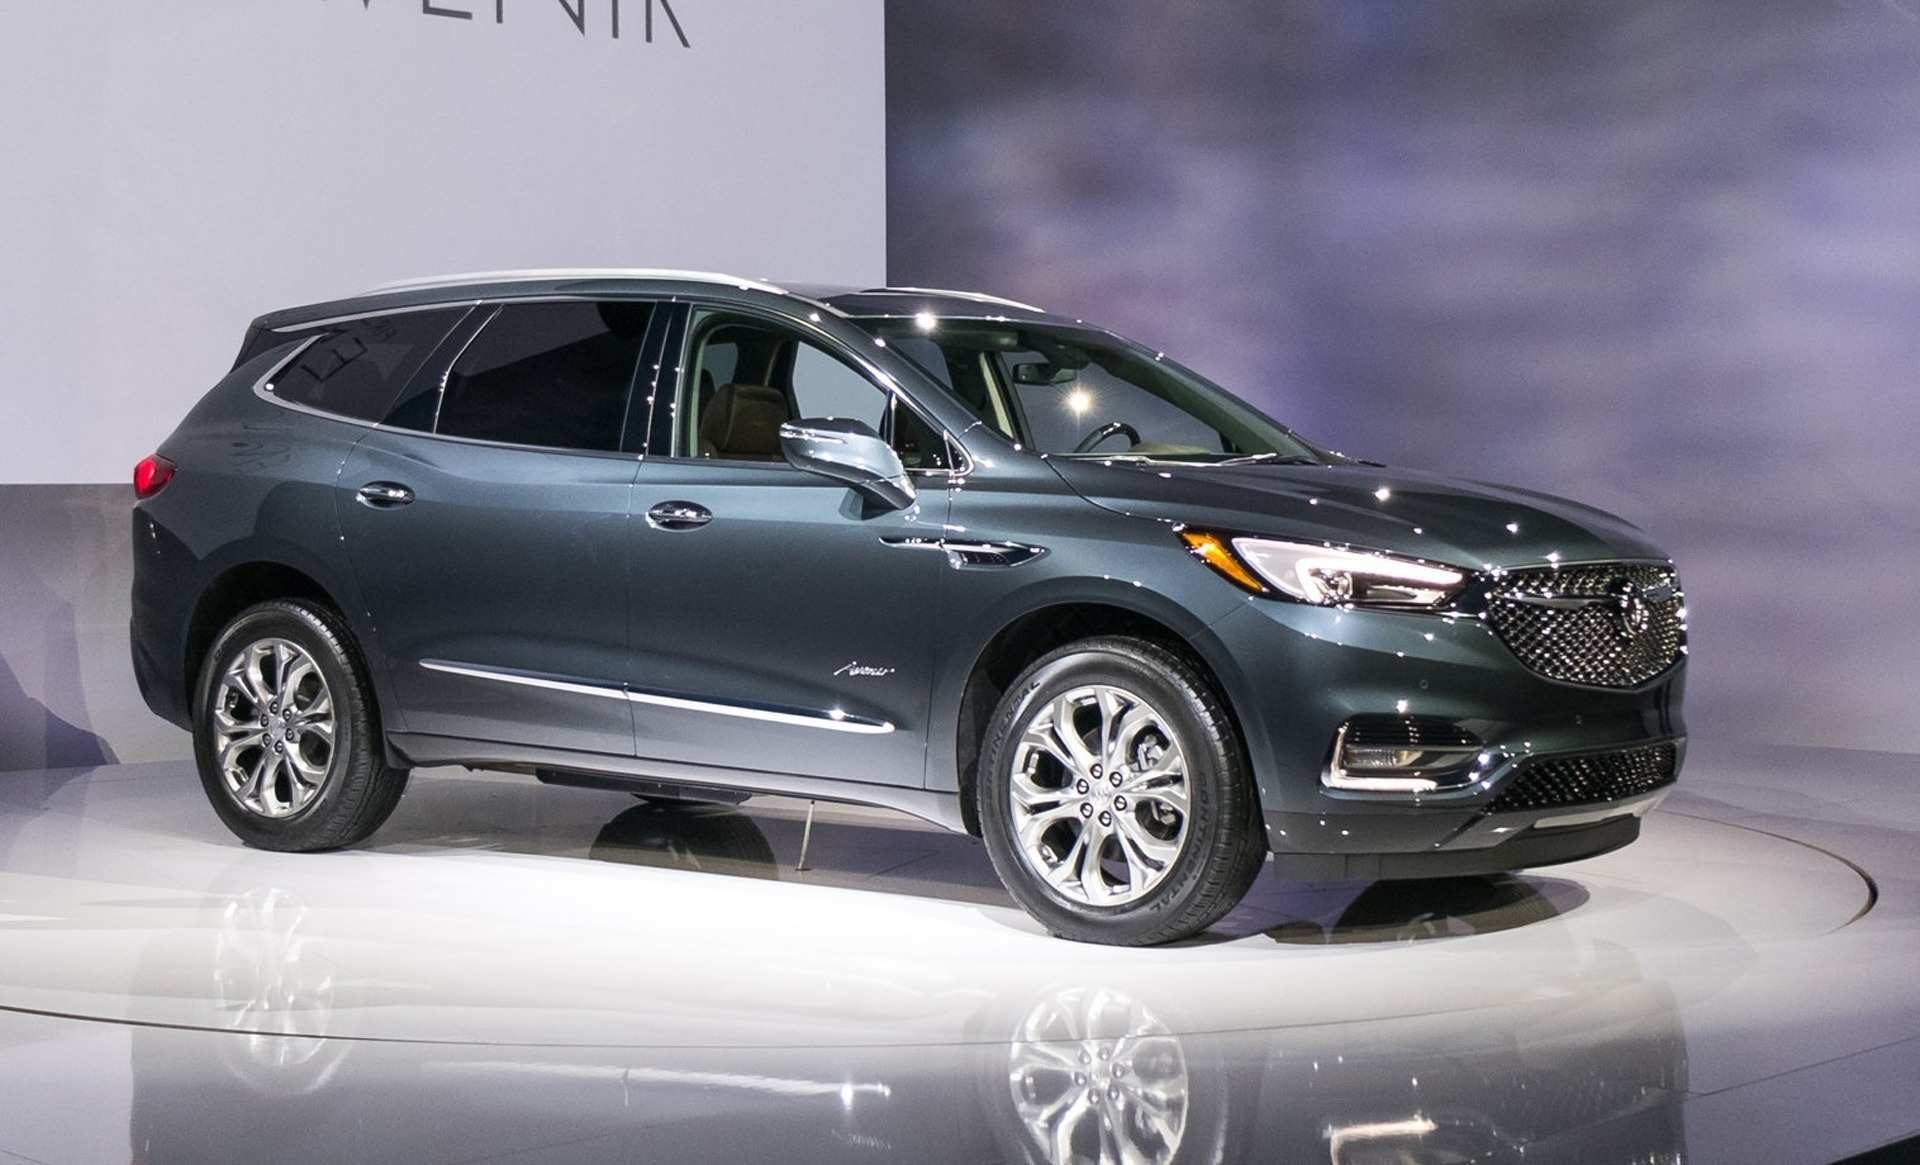 79 A 2019 Buick Enclave Spy Photos Redesign And Concept